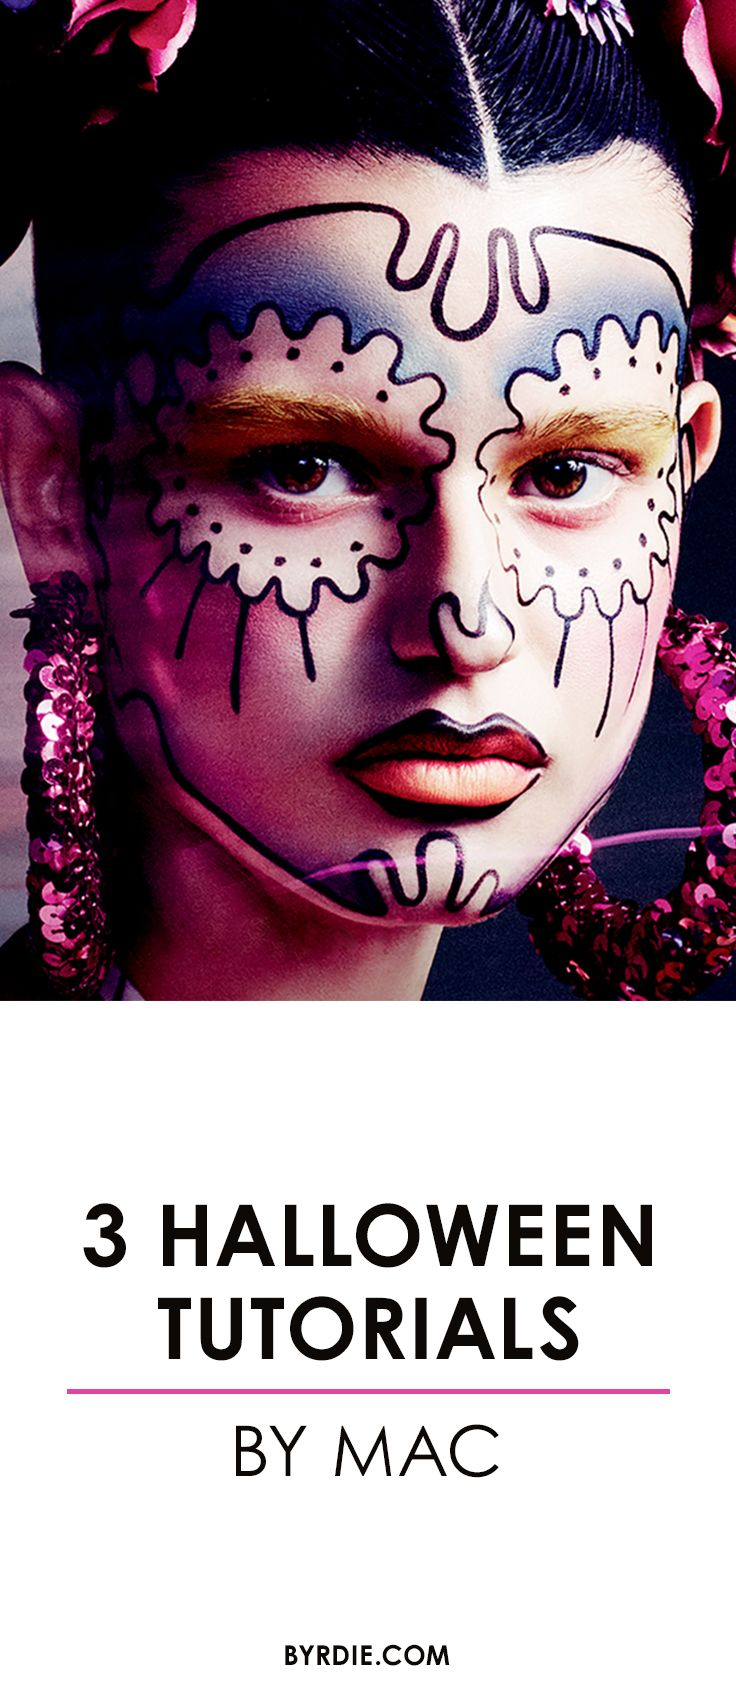 These MAC makeup looks are crazy beautiful